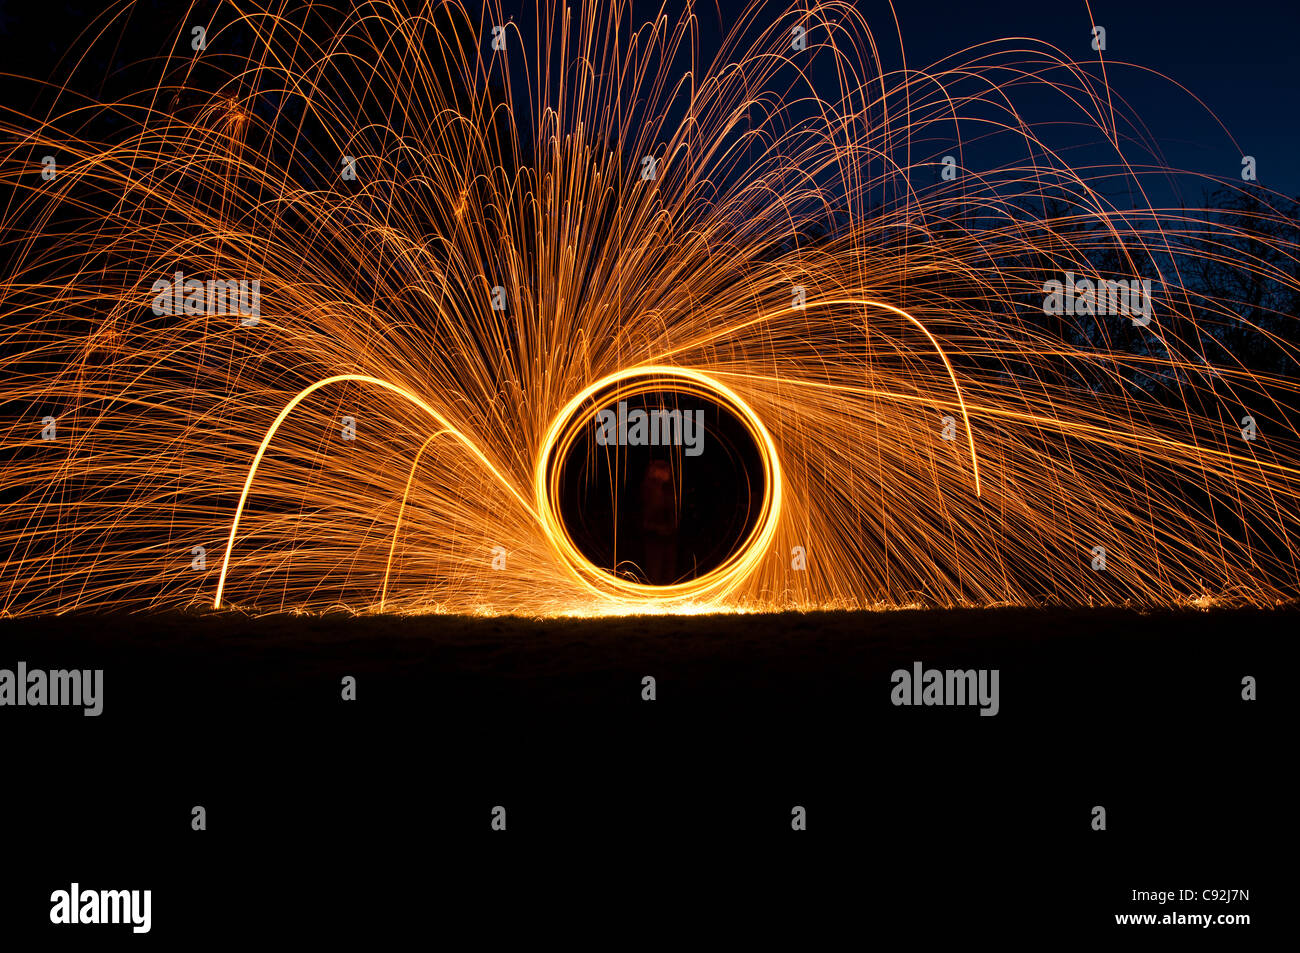 Steel wool spinning, creating gorgeous circular streaks of golden light from burning wire wool inside a whisk attached Stock Photo